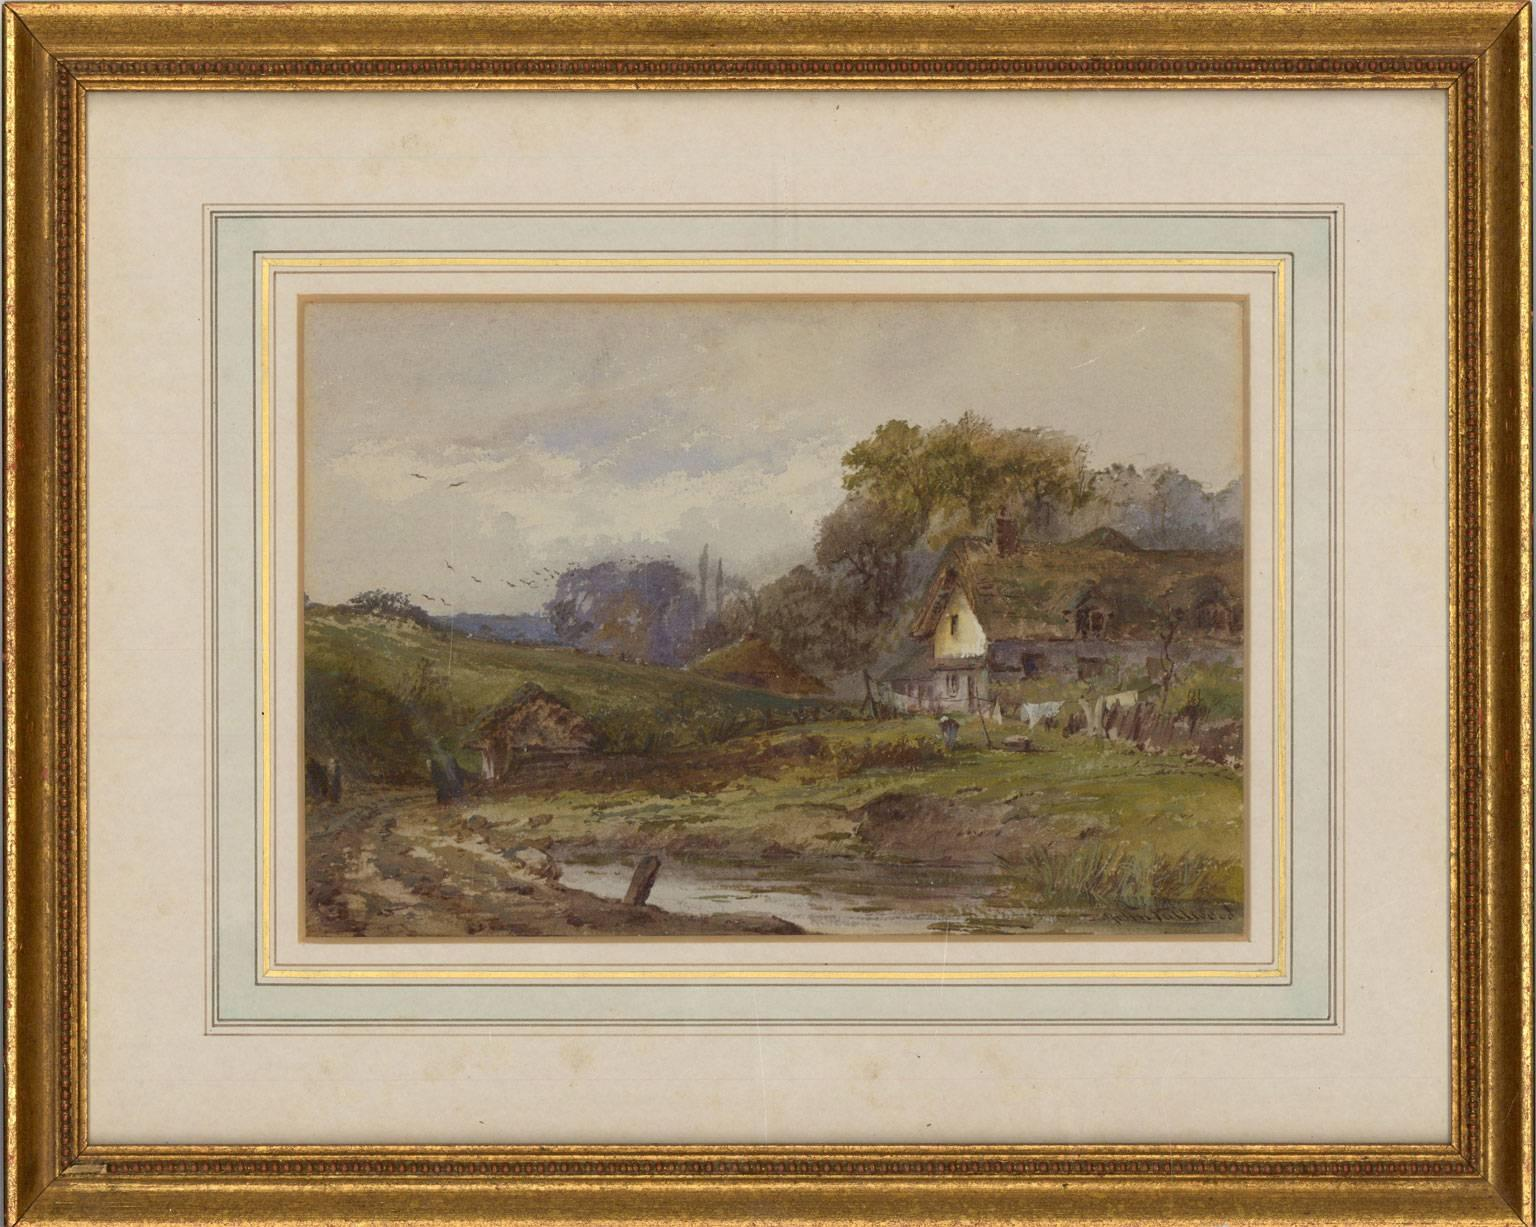 John Fulwood (1854-1931) - Signed English Watercolour, Cottage in a Landscape